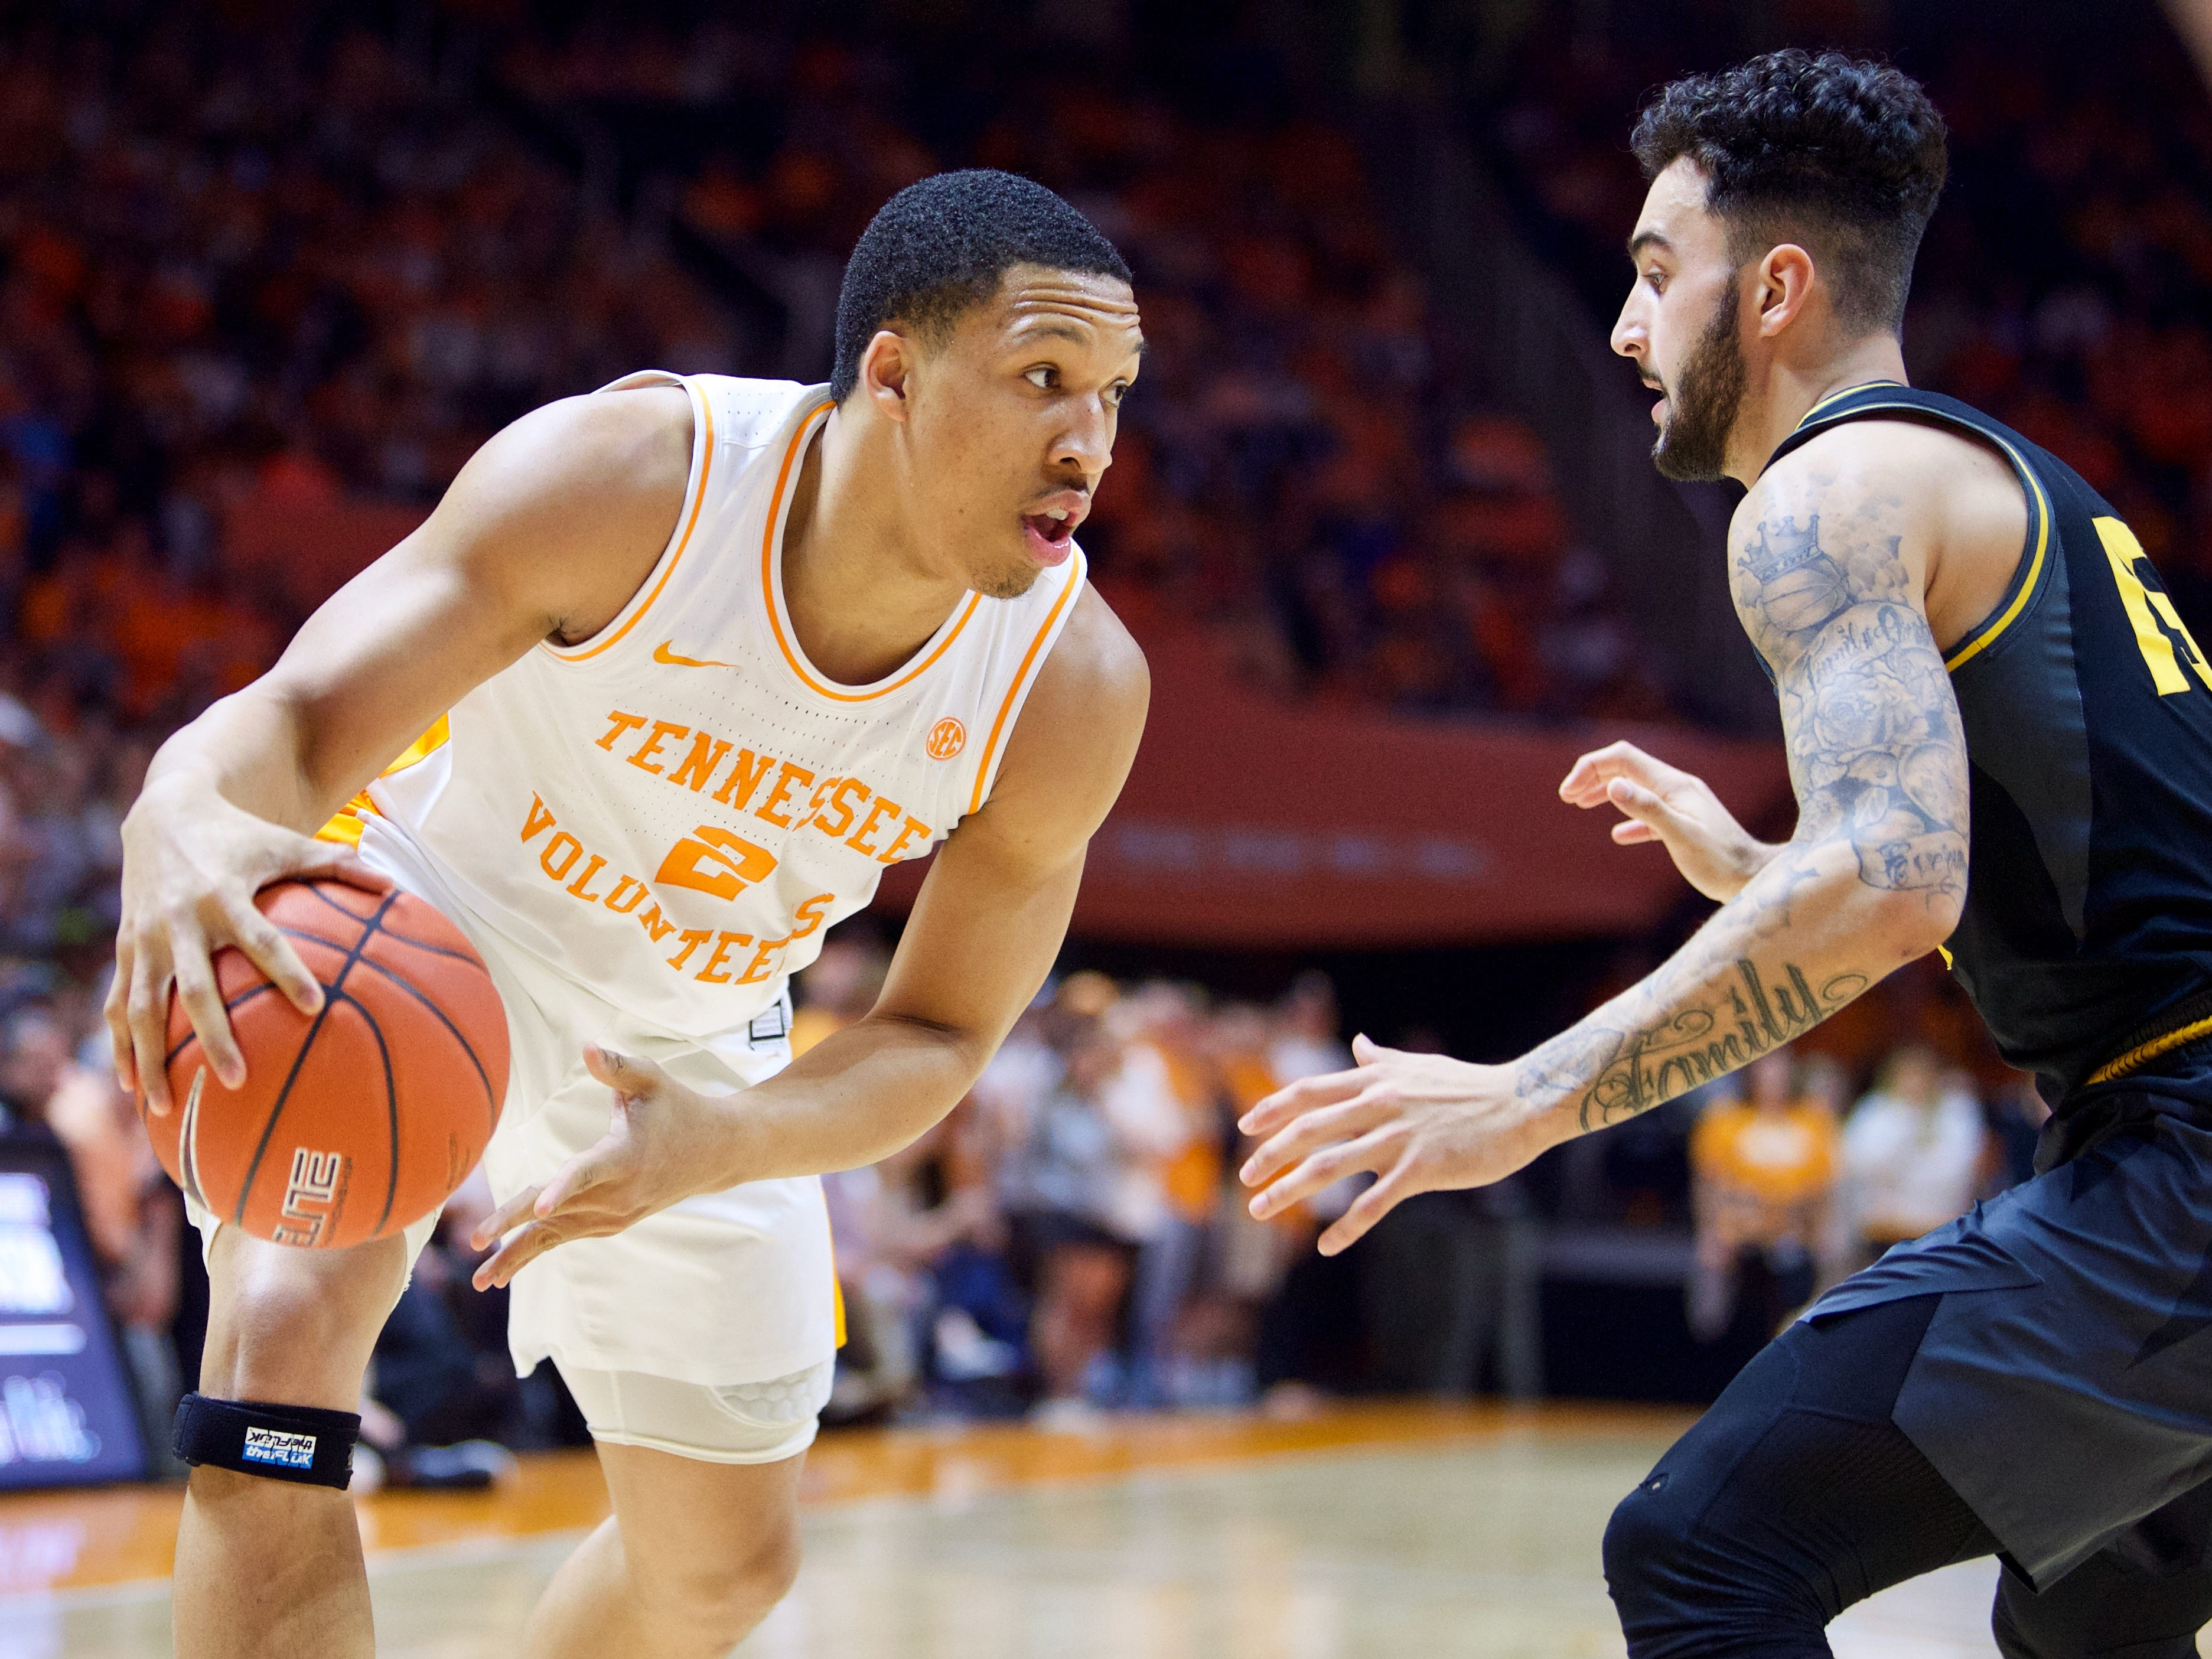 Tennessee's Grant Williams (2) is guarded by Missouri's Jordan Geist (15) on Tuesday, February 5, 2019.